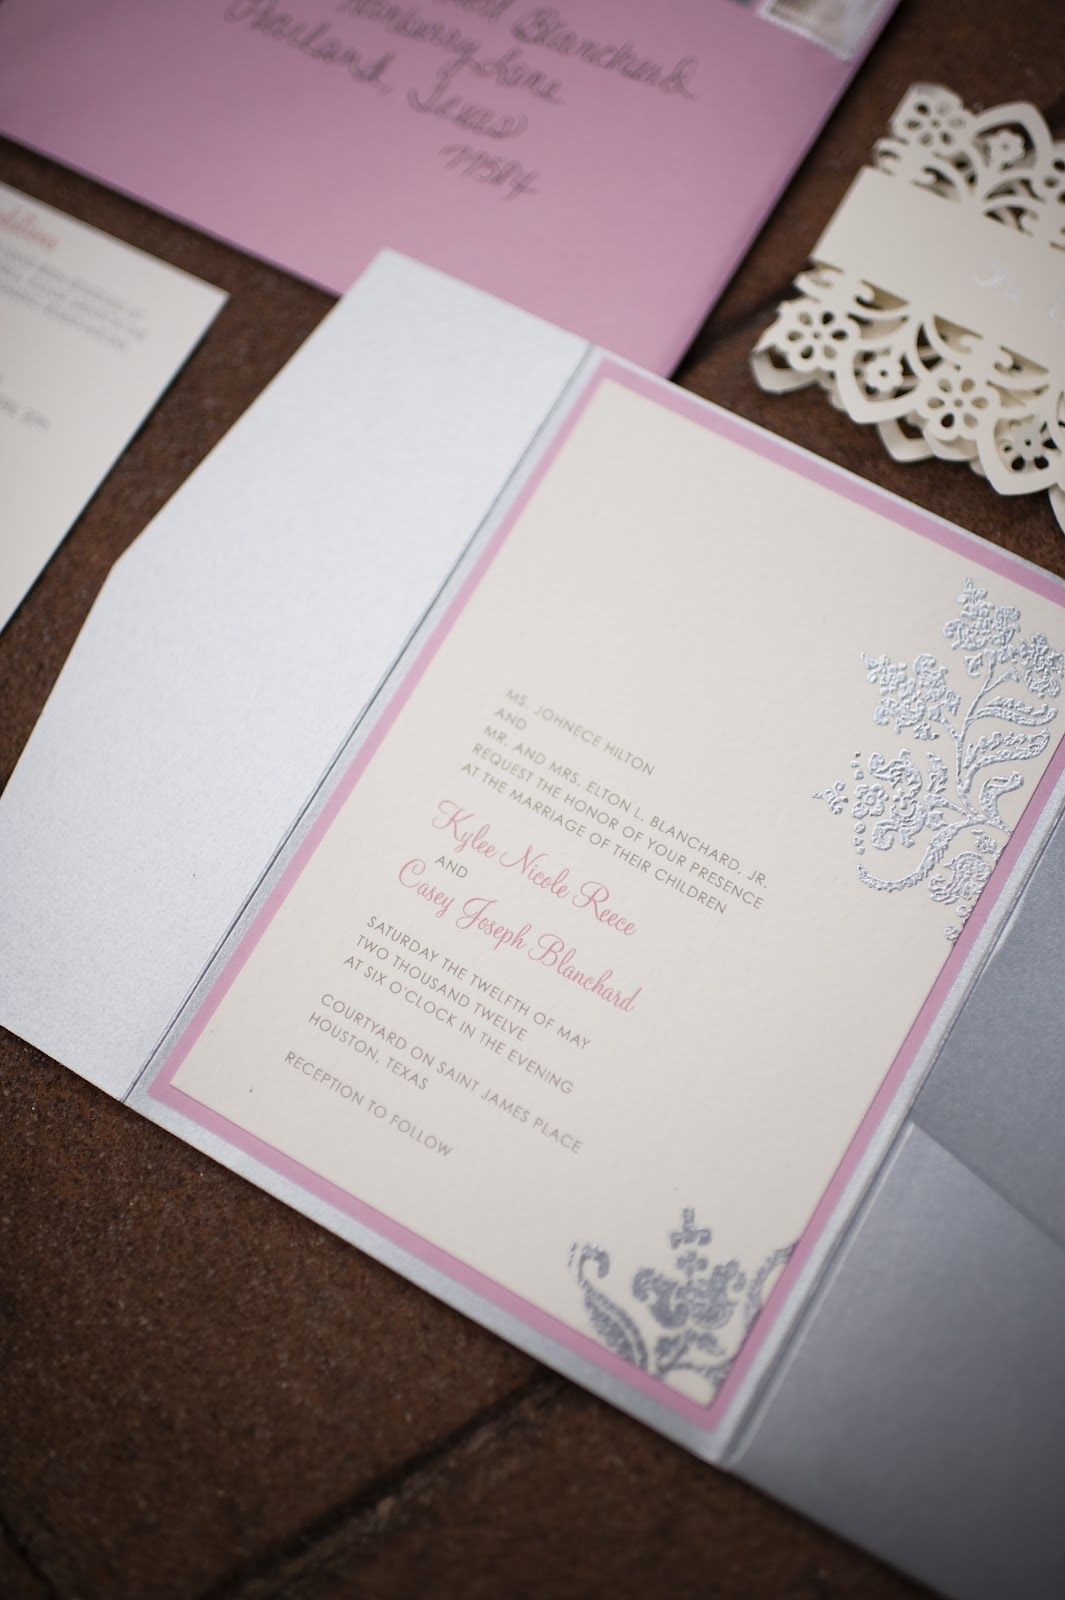 The Little Woman Invitations Part 2 Unique Wedding Invitation Wording Wedding Invitations Make Your Own Wedding Invitations